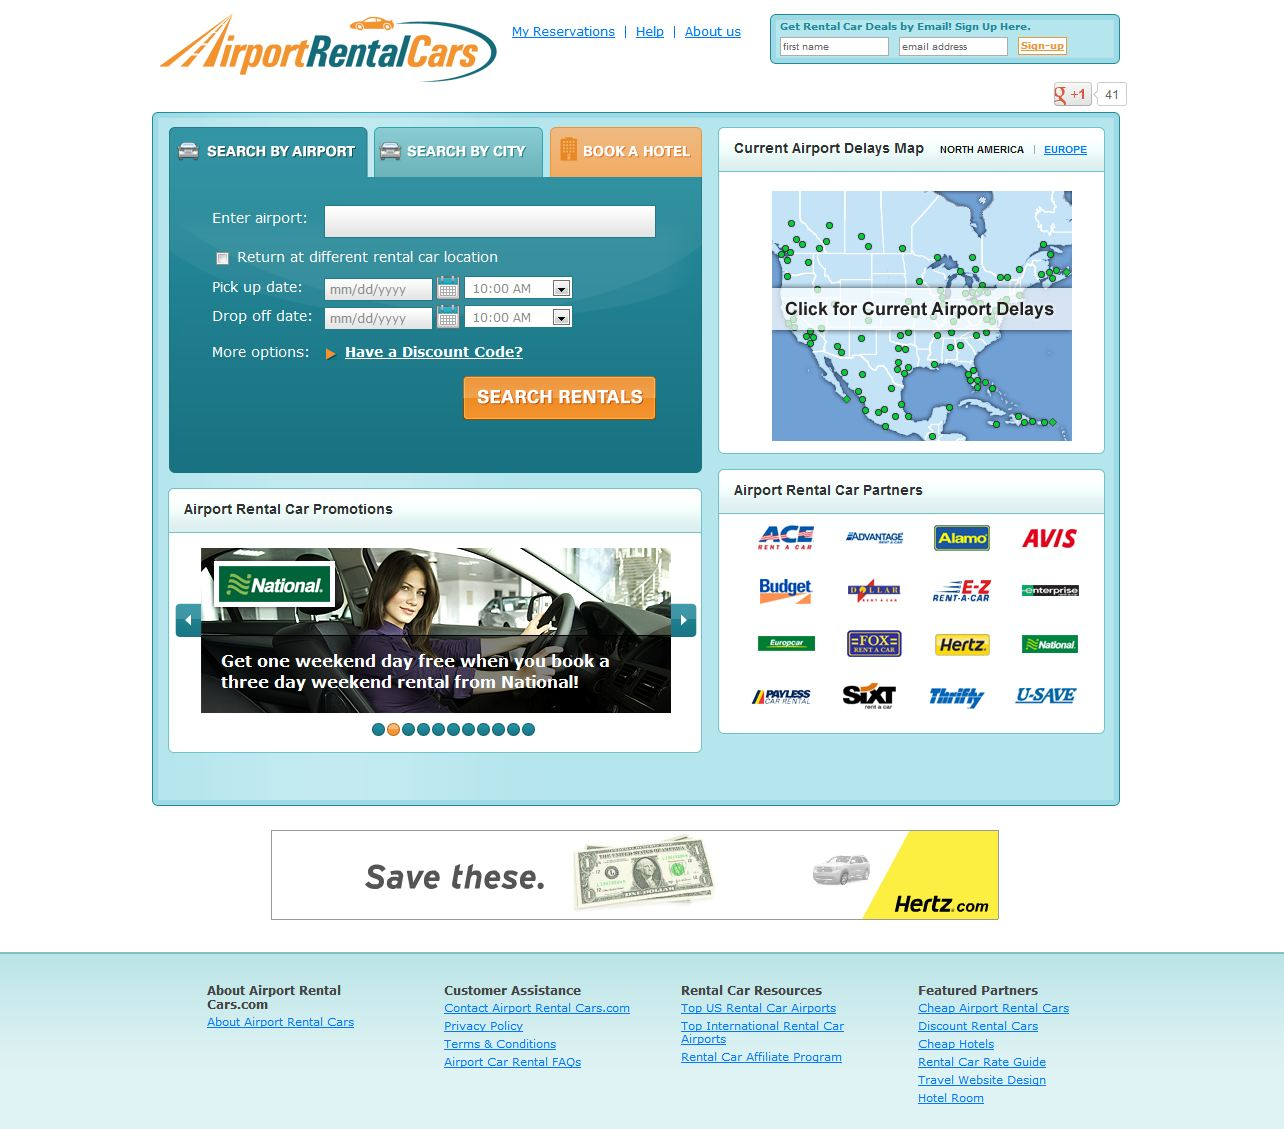 Cars Com Reviews >> Airportrentalcars Com Reviews 22 Reviews Of